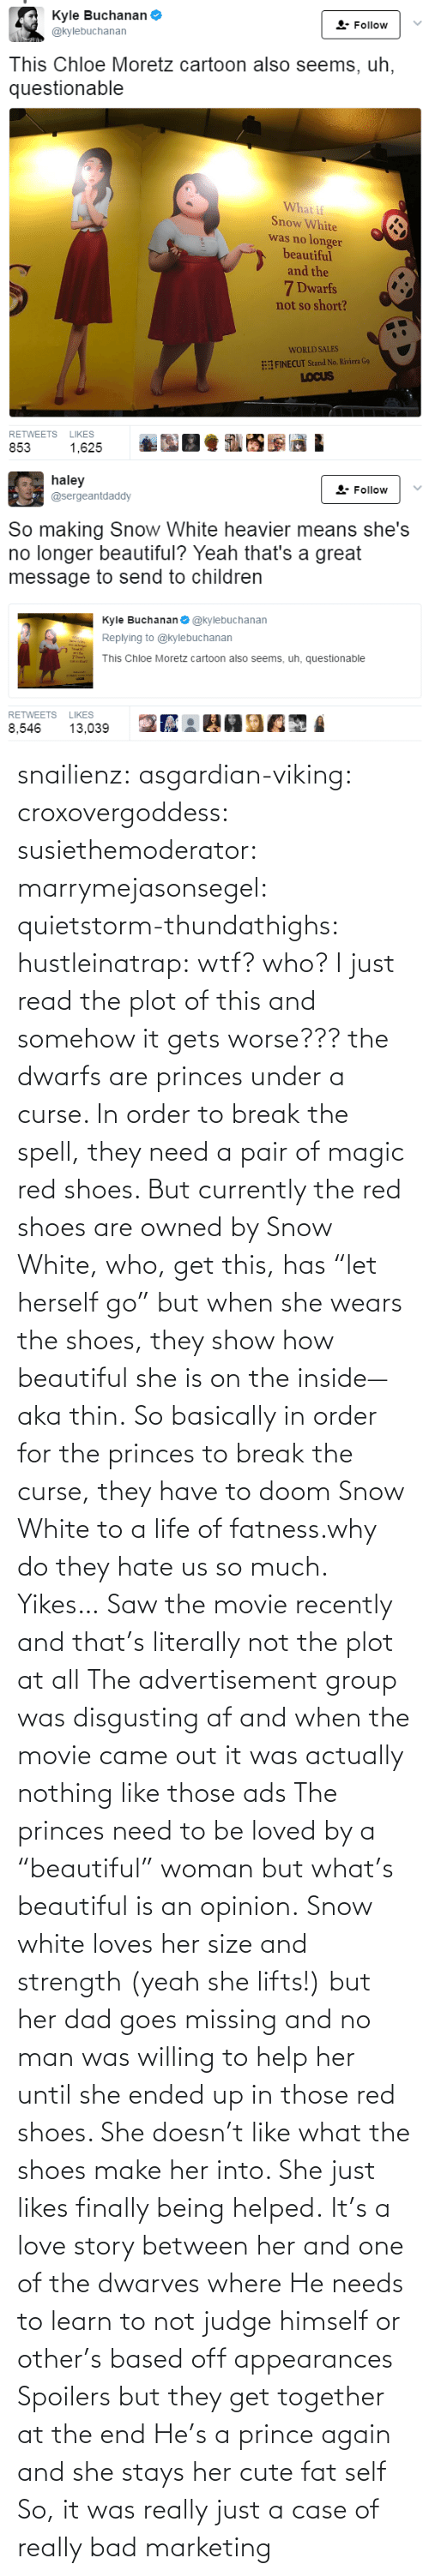 "Snow: snailienz: asgardian-viking:  croxovergoddess:  susiethemoderator:  marrymejasonsegel:   quietstorm-thundathighs:  hustleinatrap: wtf?  who?   I just read the plot of this and somehow it gets worse??? the dwarfs are princes under a curse. In order to break the spell, they need a pair of magic red shoes. But currently the red shoes are owned by Snow White, who, get this, has ""let herself go"" but when she wears the shoes, they show how beautiful she is on the inside—aka thin. So basically in order for the princes to break the curse, they have to doom Snow White to a life of fatness.why do they hate us so much.   Yikes…    Saw the movie recently and that's literally not the plot at all The advertisement group was disgusting af and when the movie came out it was actually nothing like those ads The princes need to be loved by a ""beautiful"" woman but what's beautiful is an opinion. Snow white loves her size and strength (yeah she lifts!) but her dad goes missing and no man was willing to help her until she ended up in those red shoes. She doesn't like what the shoes make her into. She just likes finally being helped. It's a love story between her and one of the dwarves where He needs to learn to not judge himself or other's based off appearances  Spoilers but they get together at the end He's a prince again and she stays her cute fat self  So, it was really just a case of really bad marketing"